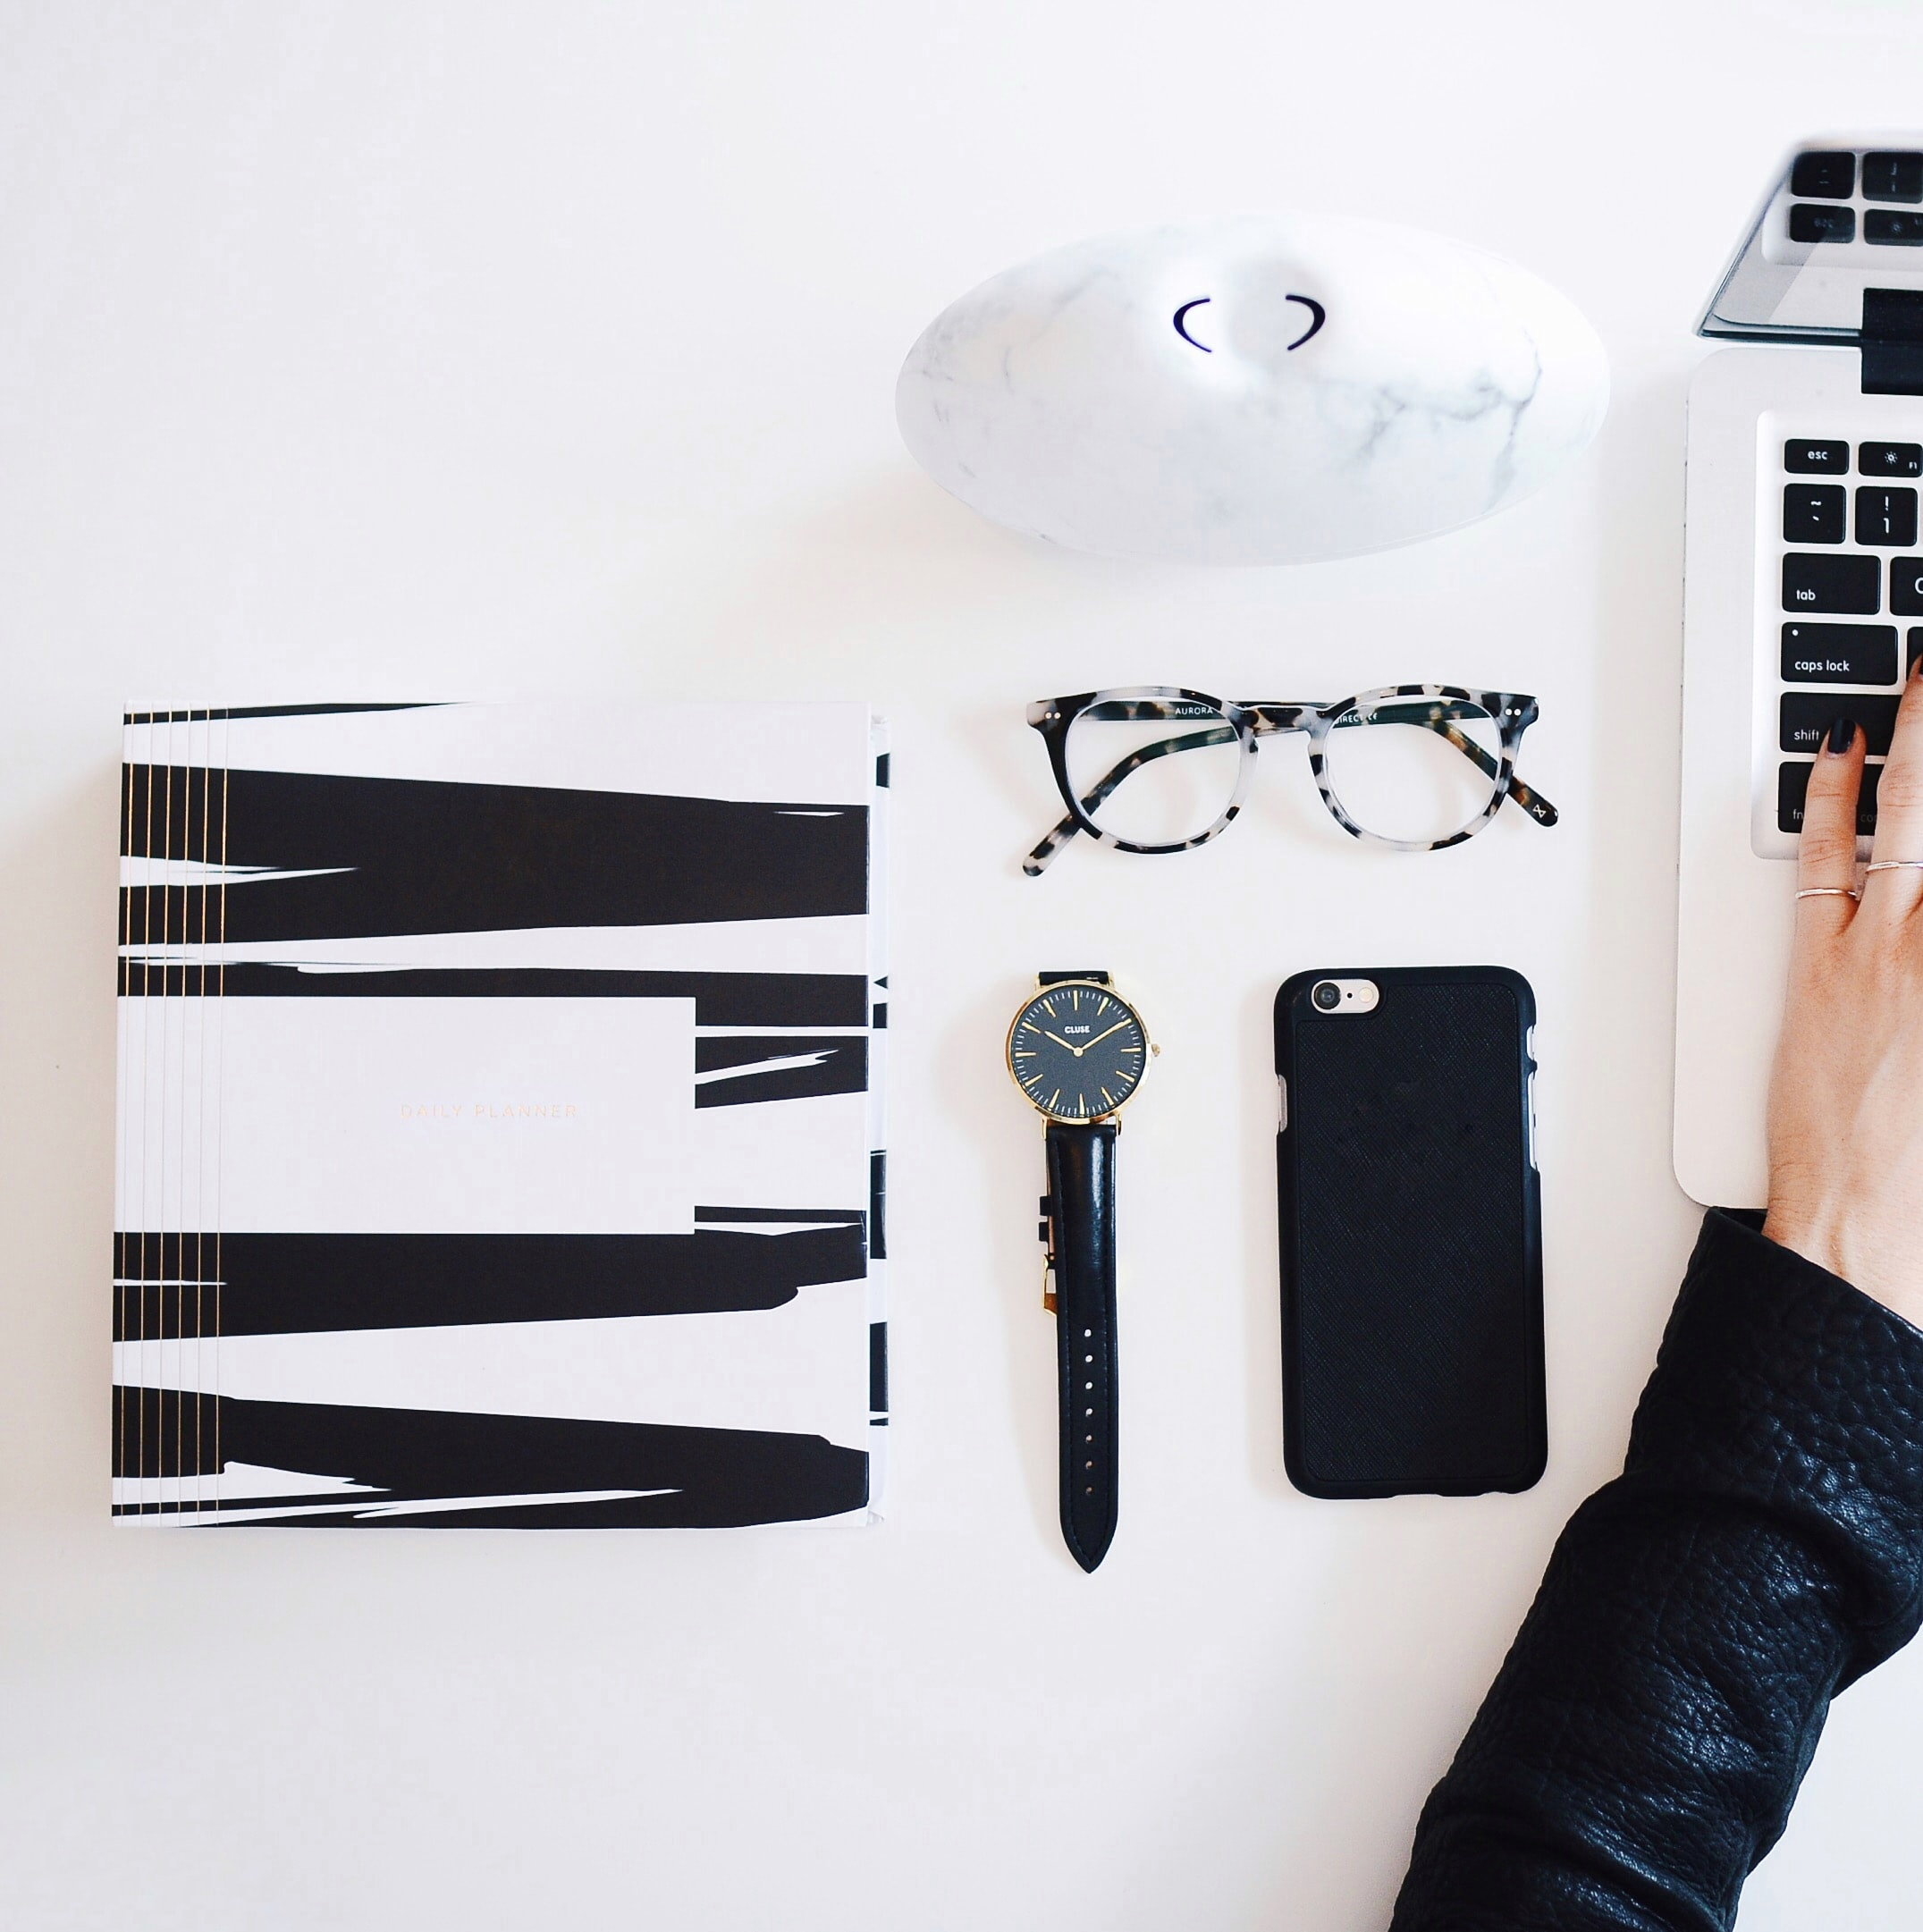 A flatlay image of a white desk with a laptop, reading glasses, a watch, smartphone and various other items.